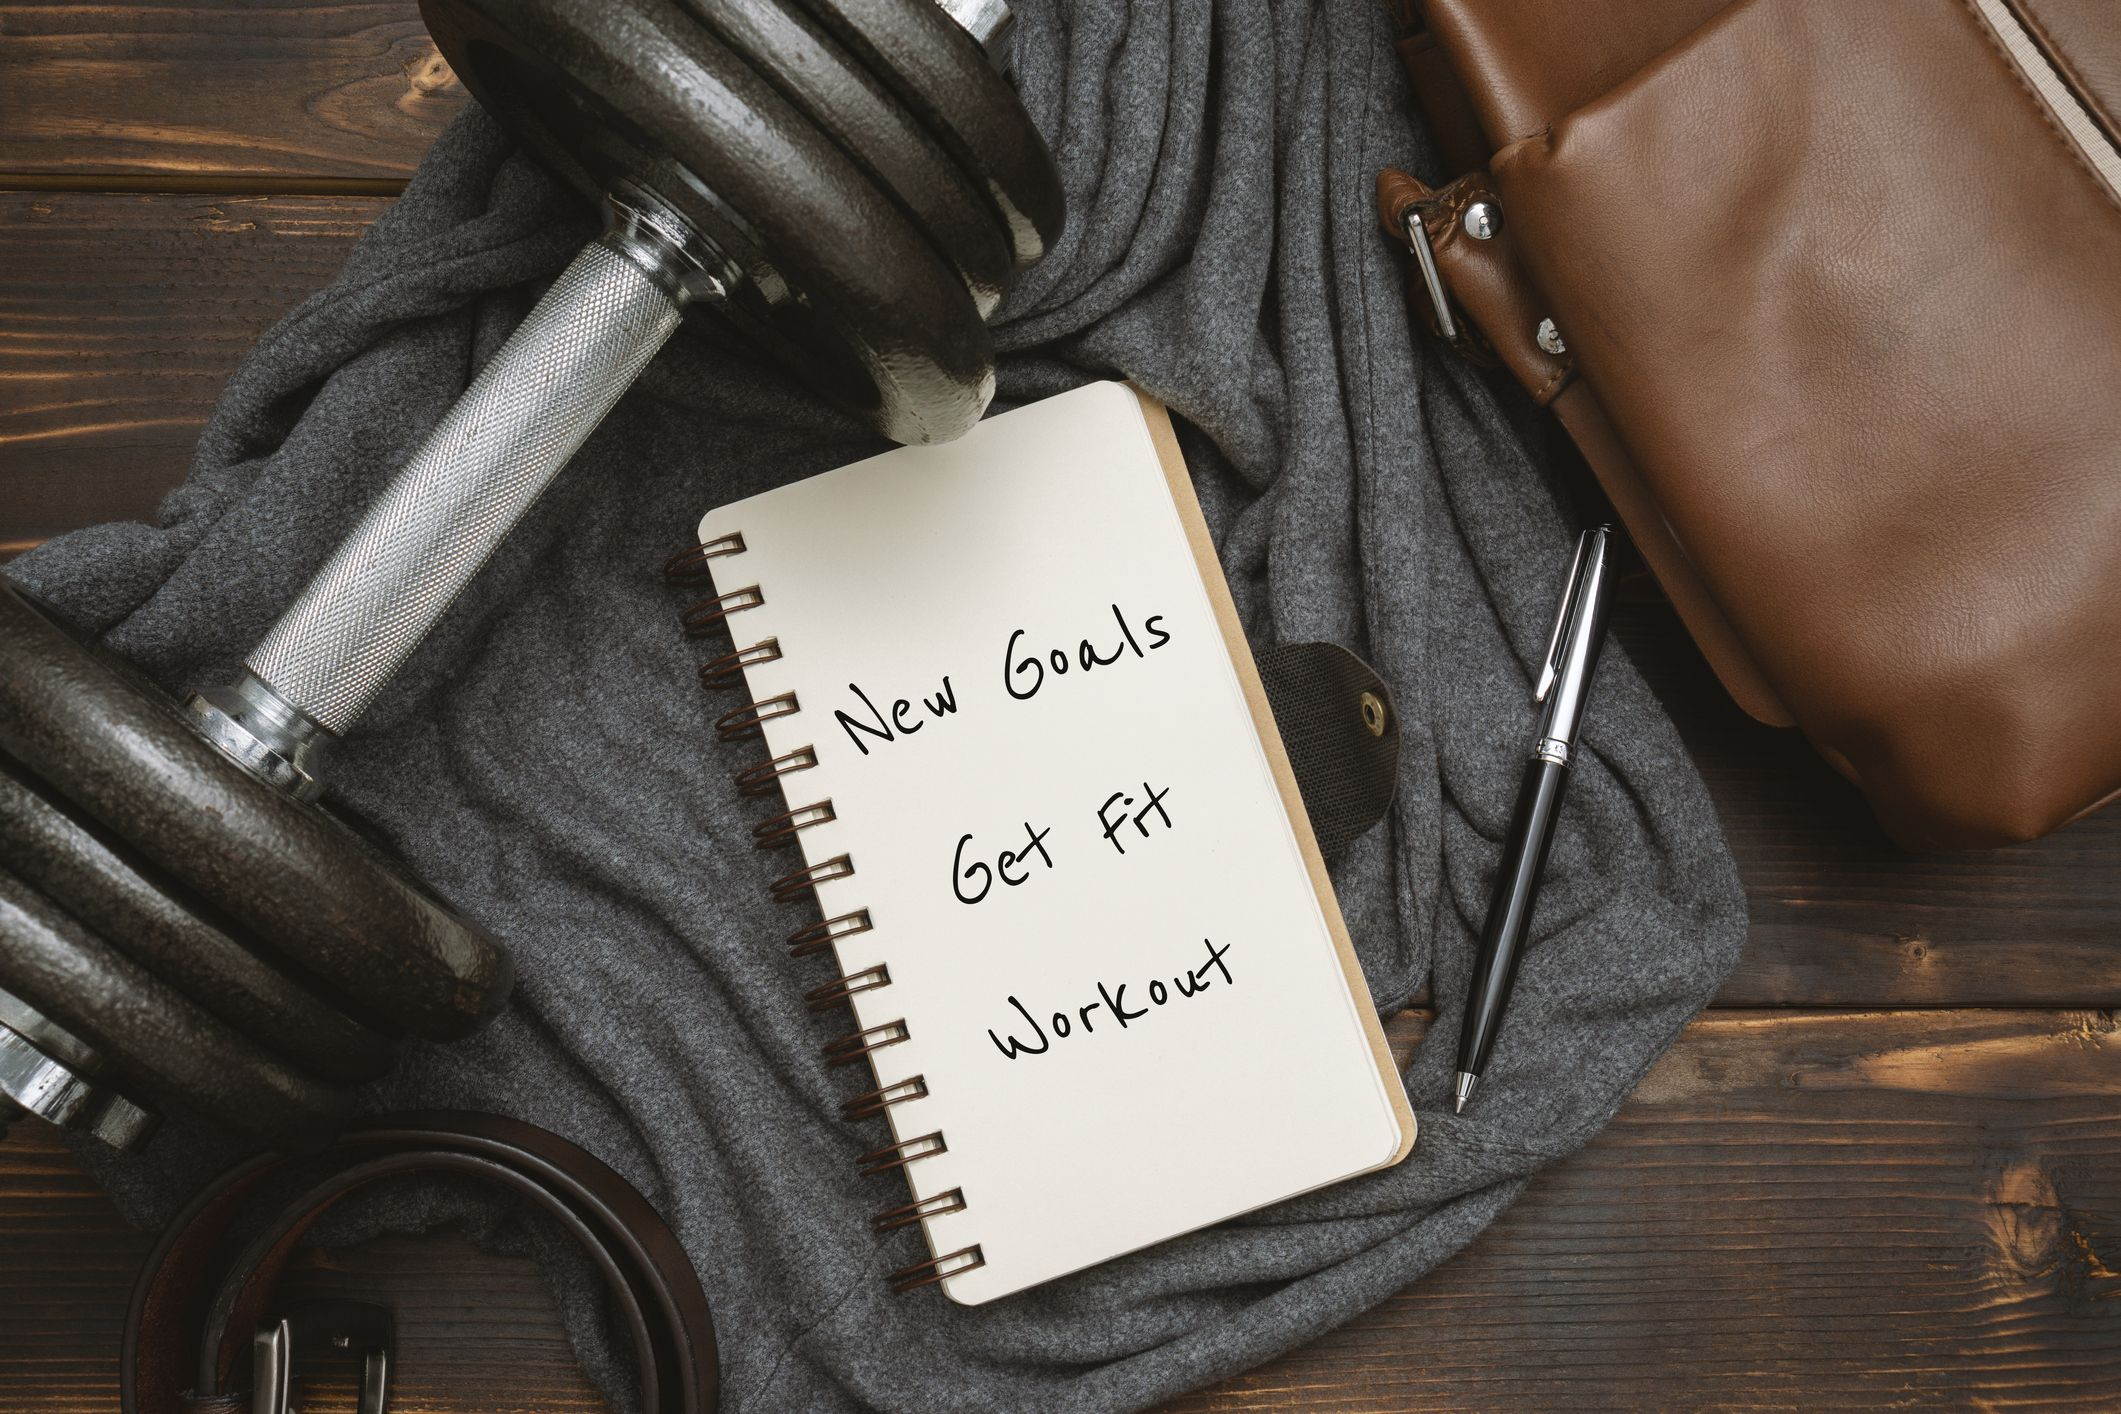 New Year's Goals and Resolution Written on Notepad, with Dumbbell and Satchel Man's Bag on Rustic Wood